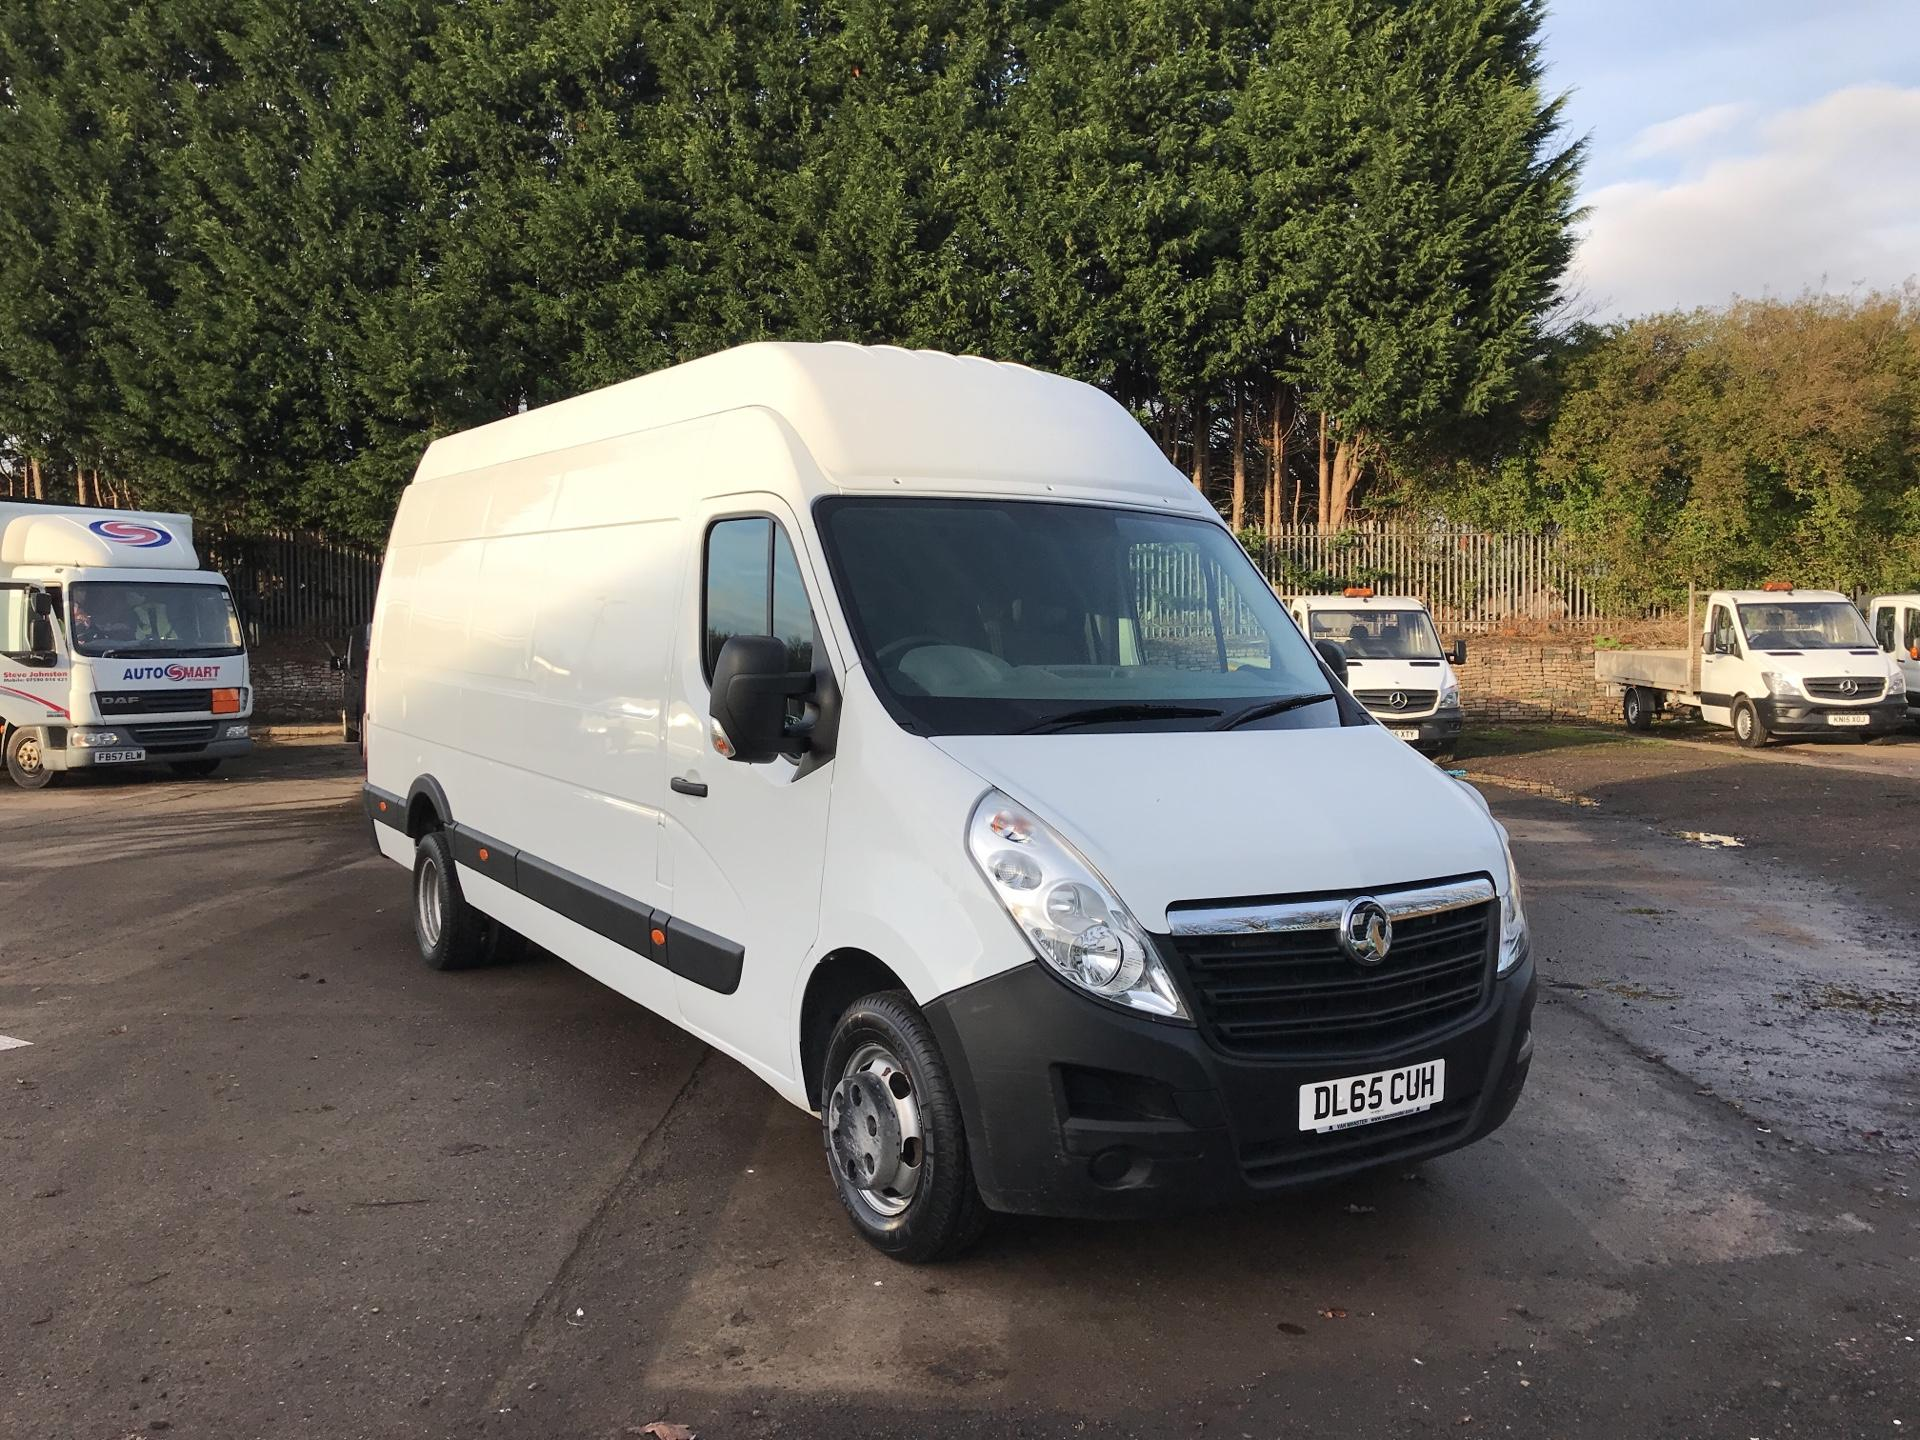 2015 Vauxhall Movano 35 L4 H3 125PS EURO 5  *VALUE RANGE VEHICLE - CONDITION REFLECTED IN PRICE* (DL65CUH)